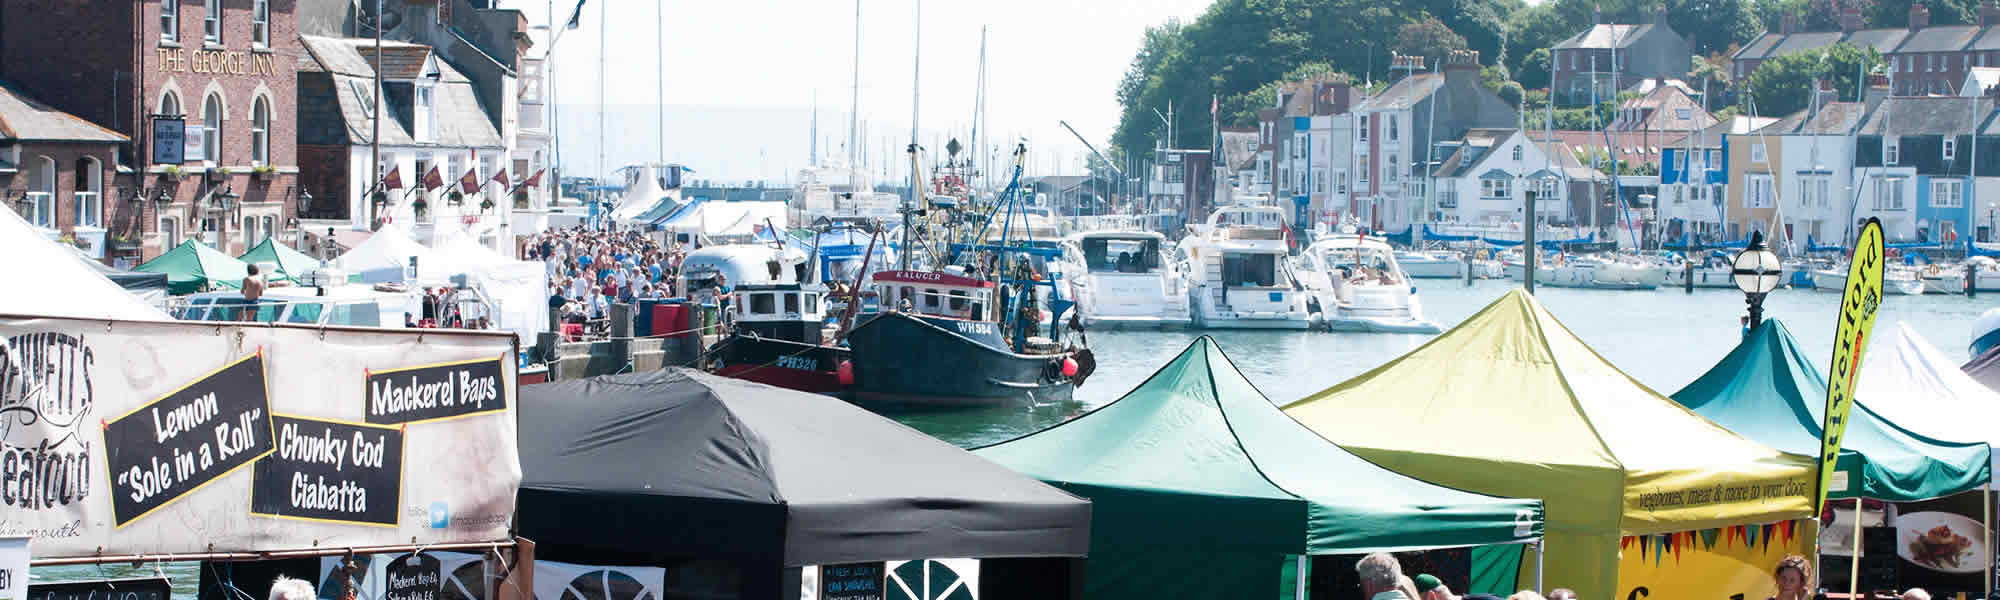 Weymouth Seafood Festival